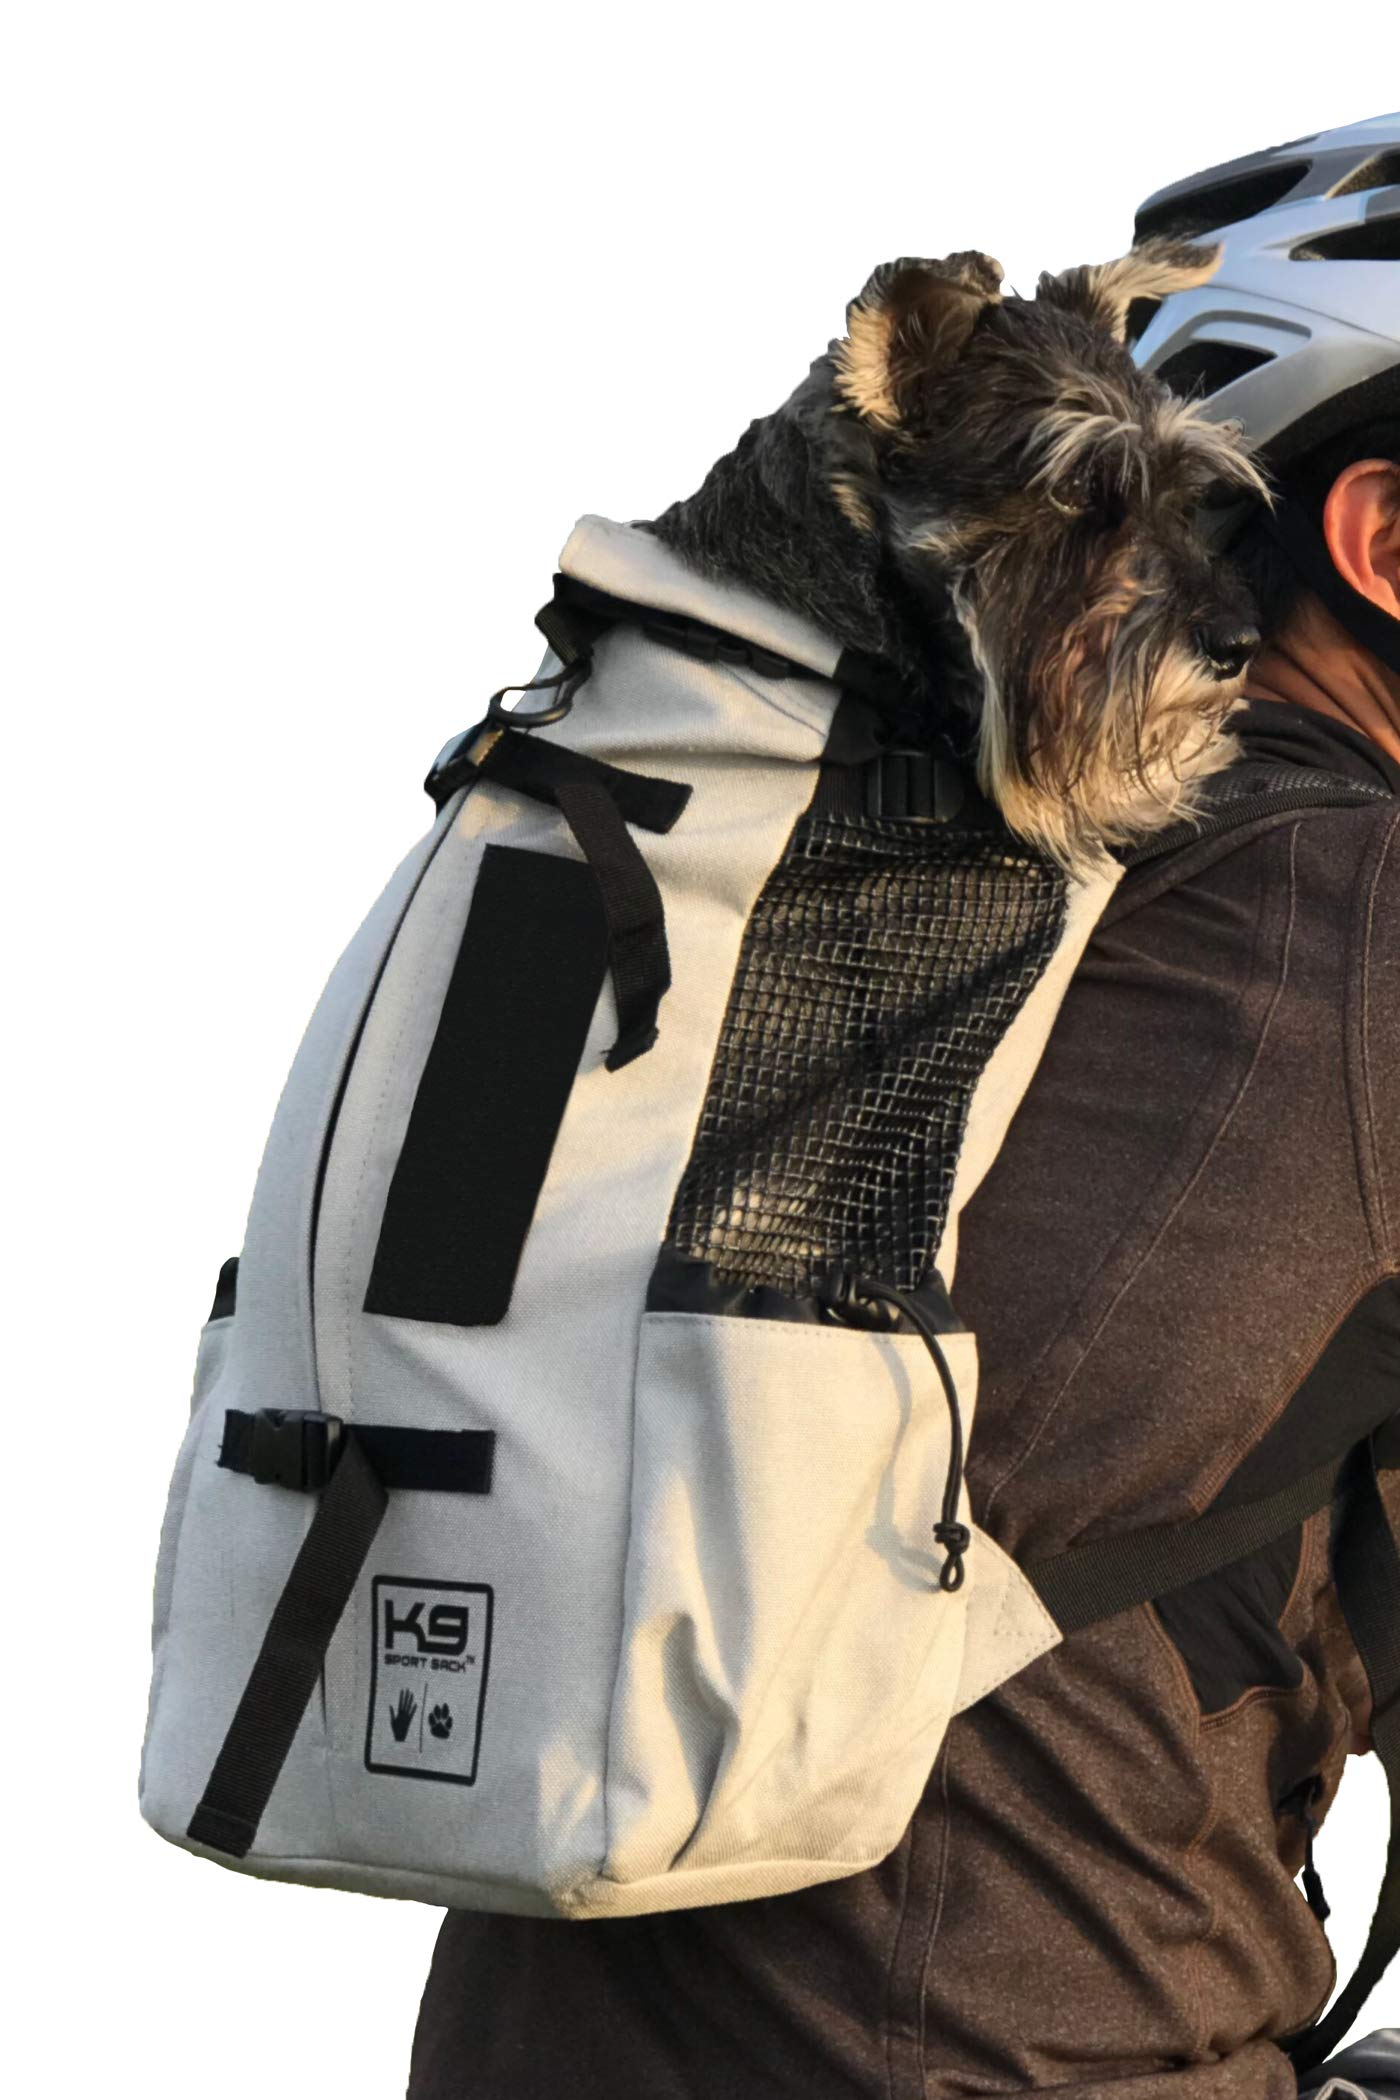 K9 Sport Sack | Dog Carrier Backpack for Small and Medium Pets | Front Facing Adjustable Pack with Storage Bag | Fully Ventilated | Veterinarian Approved (Medium, Air - Charcoal Grey) by K9 Sport Sack